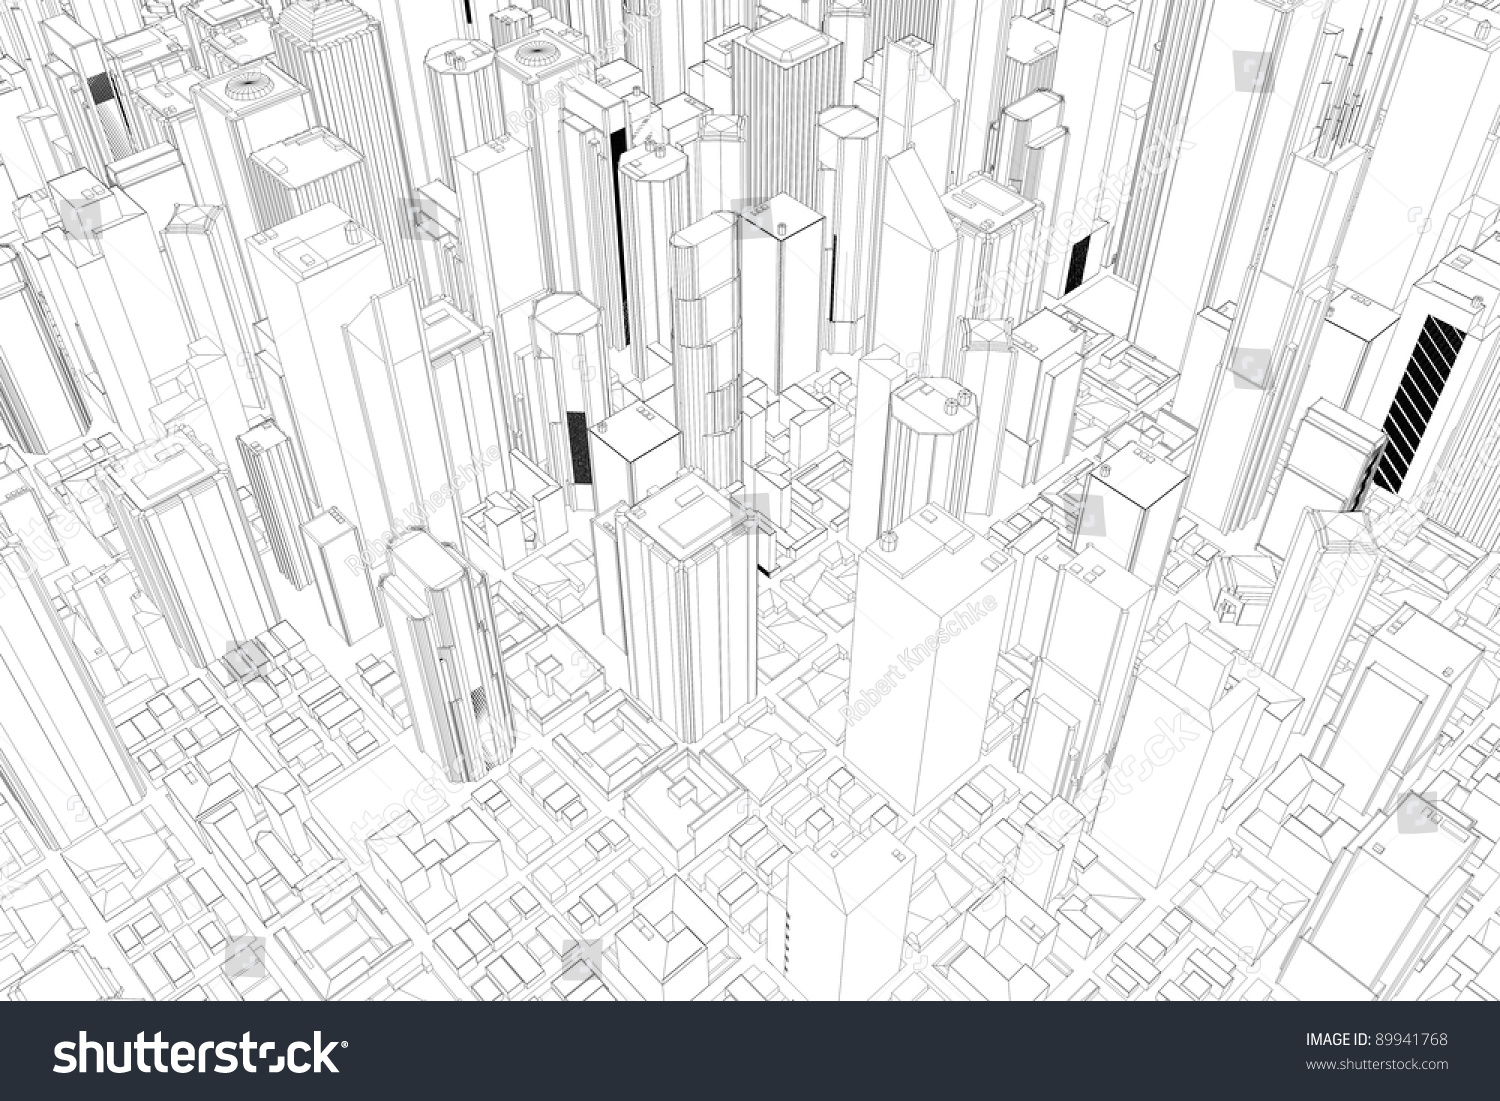 Architectural Drawings Of Skyscrapers architectural drawing city skyscrapers above stock illustration